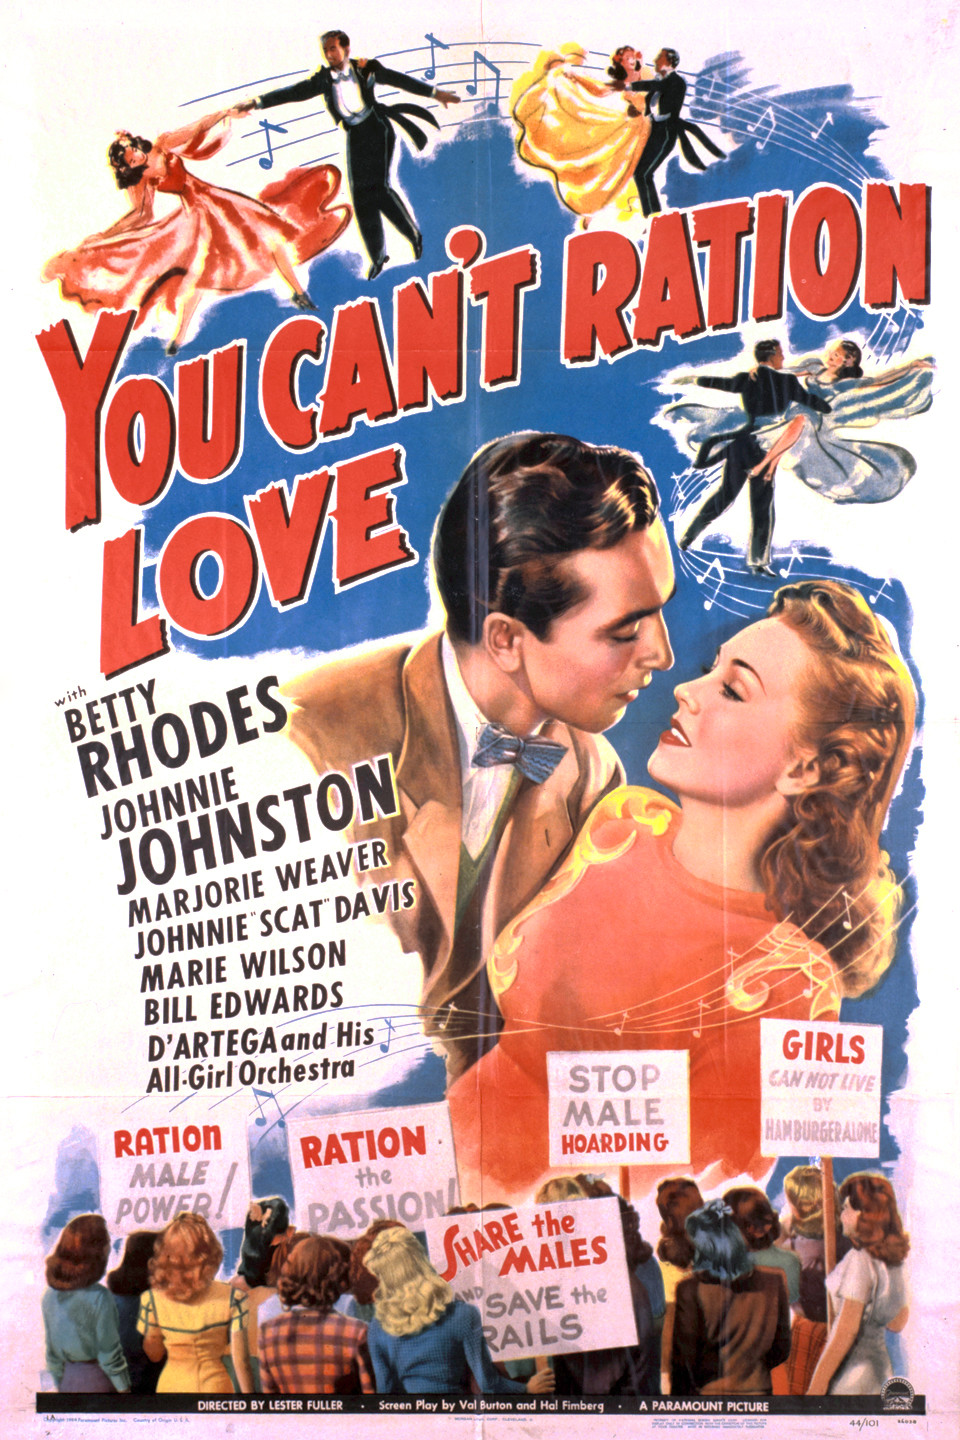 Johnny Johnston and Betty Jane Rhodes in You Can't Ration Love (1944)